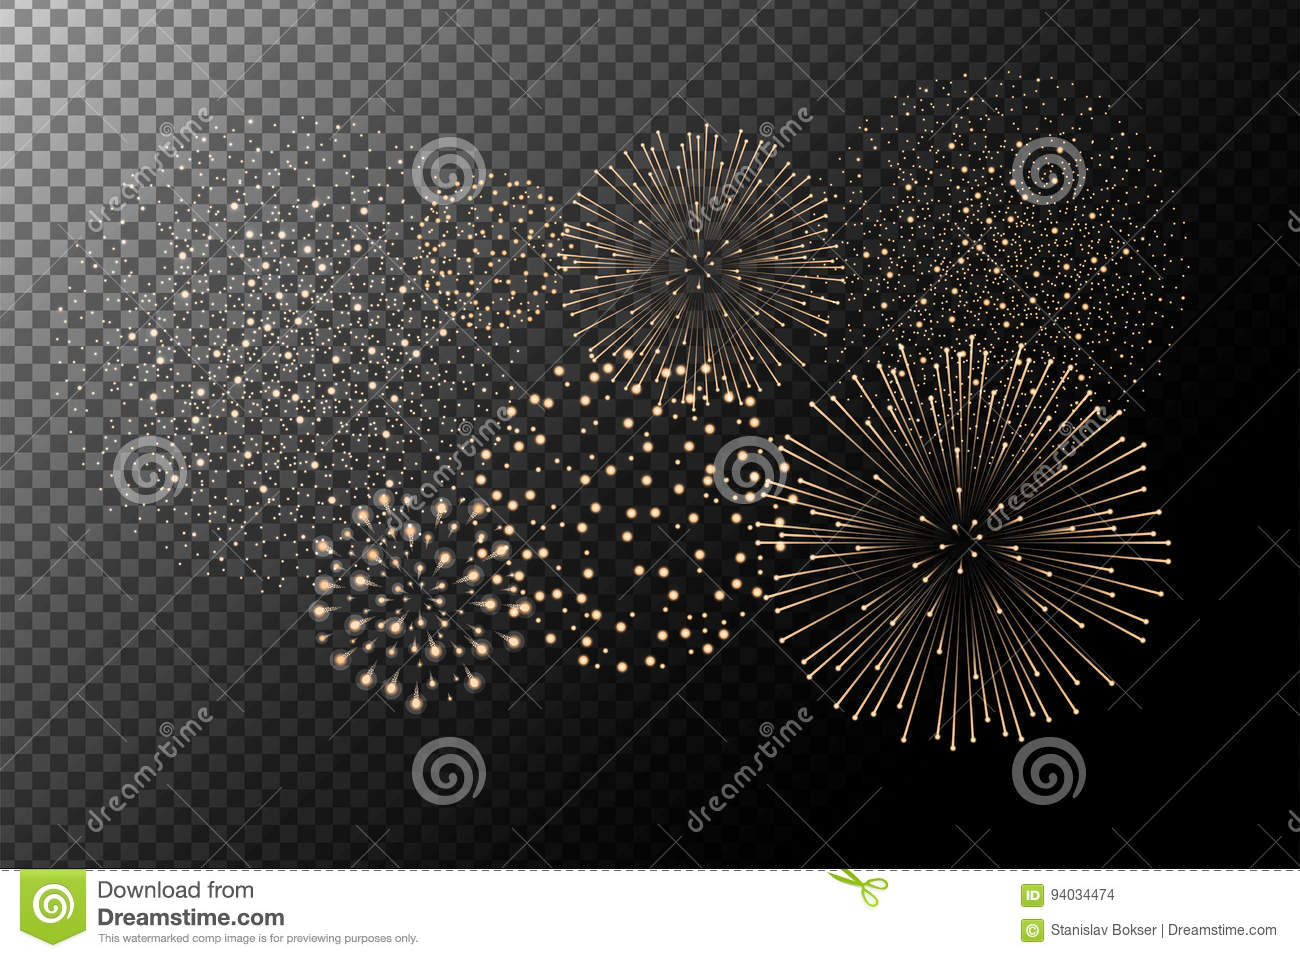 Fireworks on transparent background. Independence day concept. Festive and holidays background